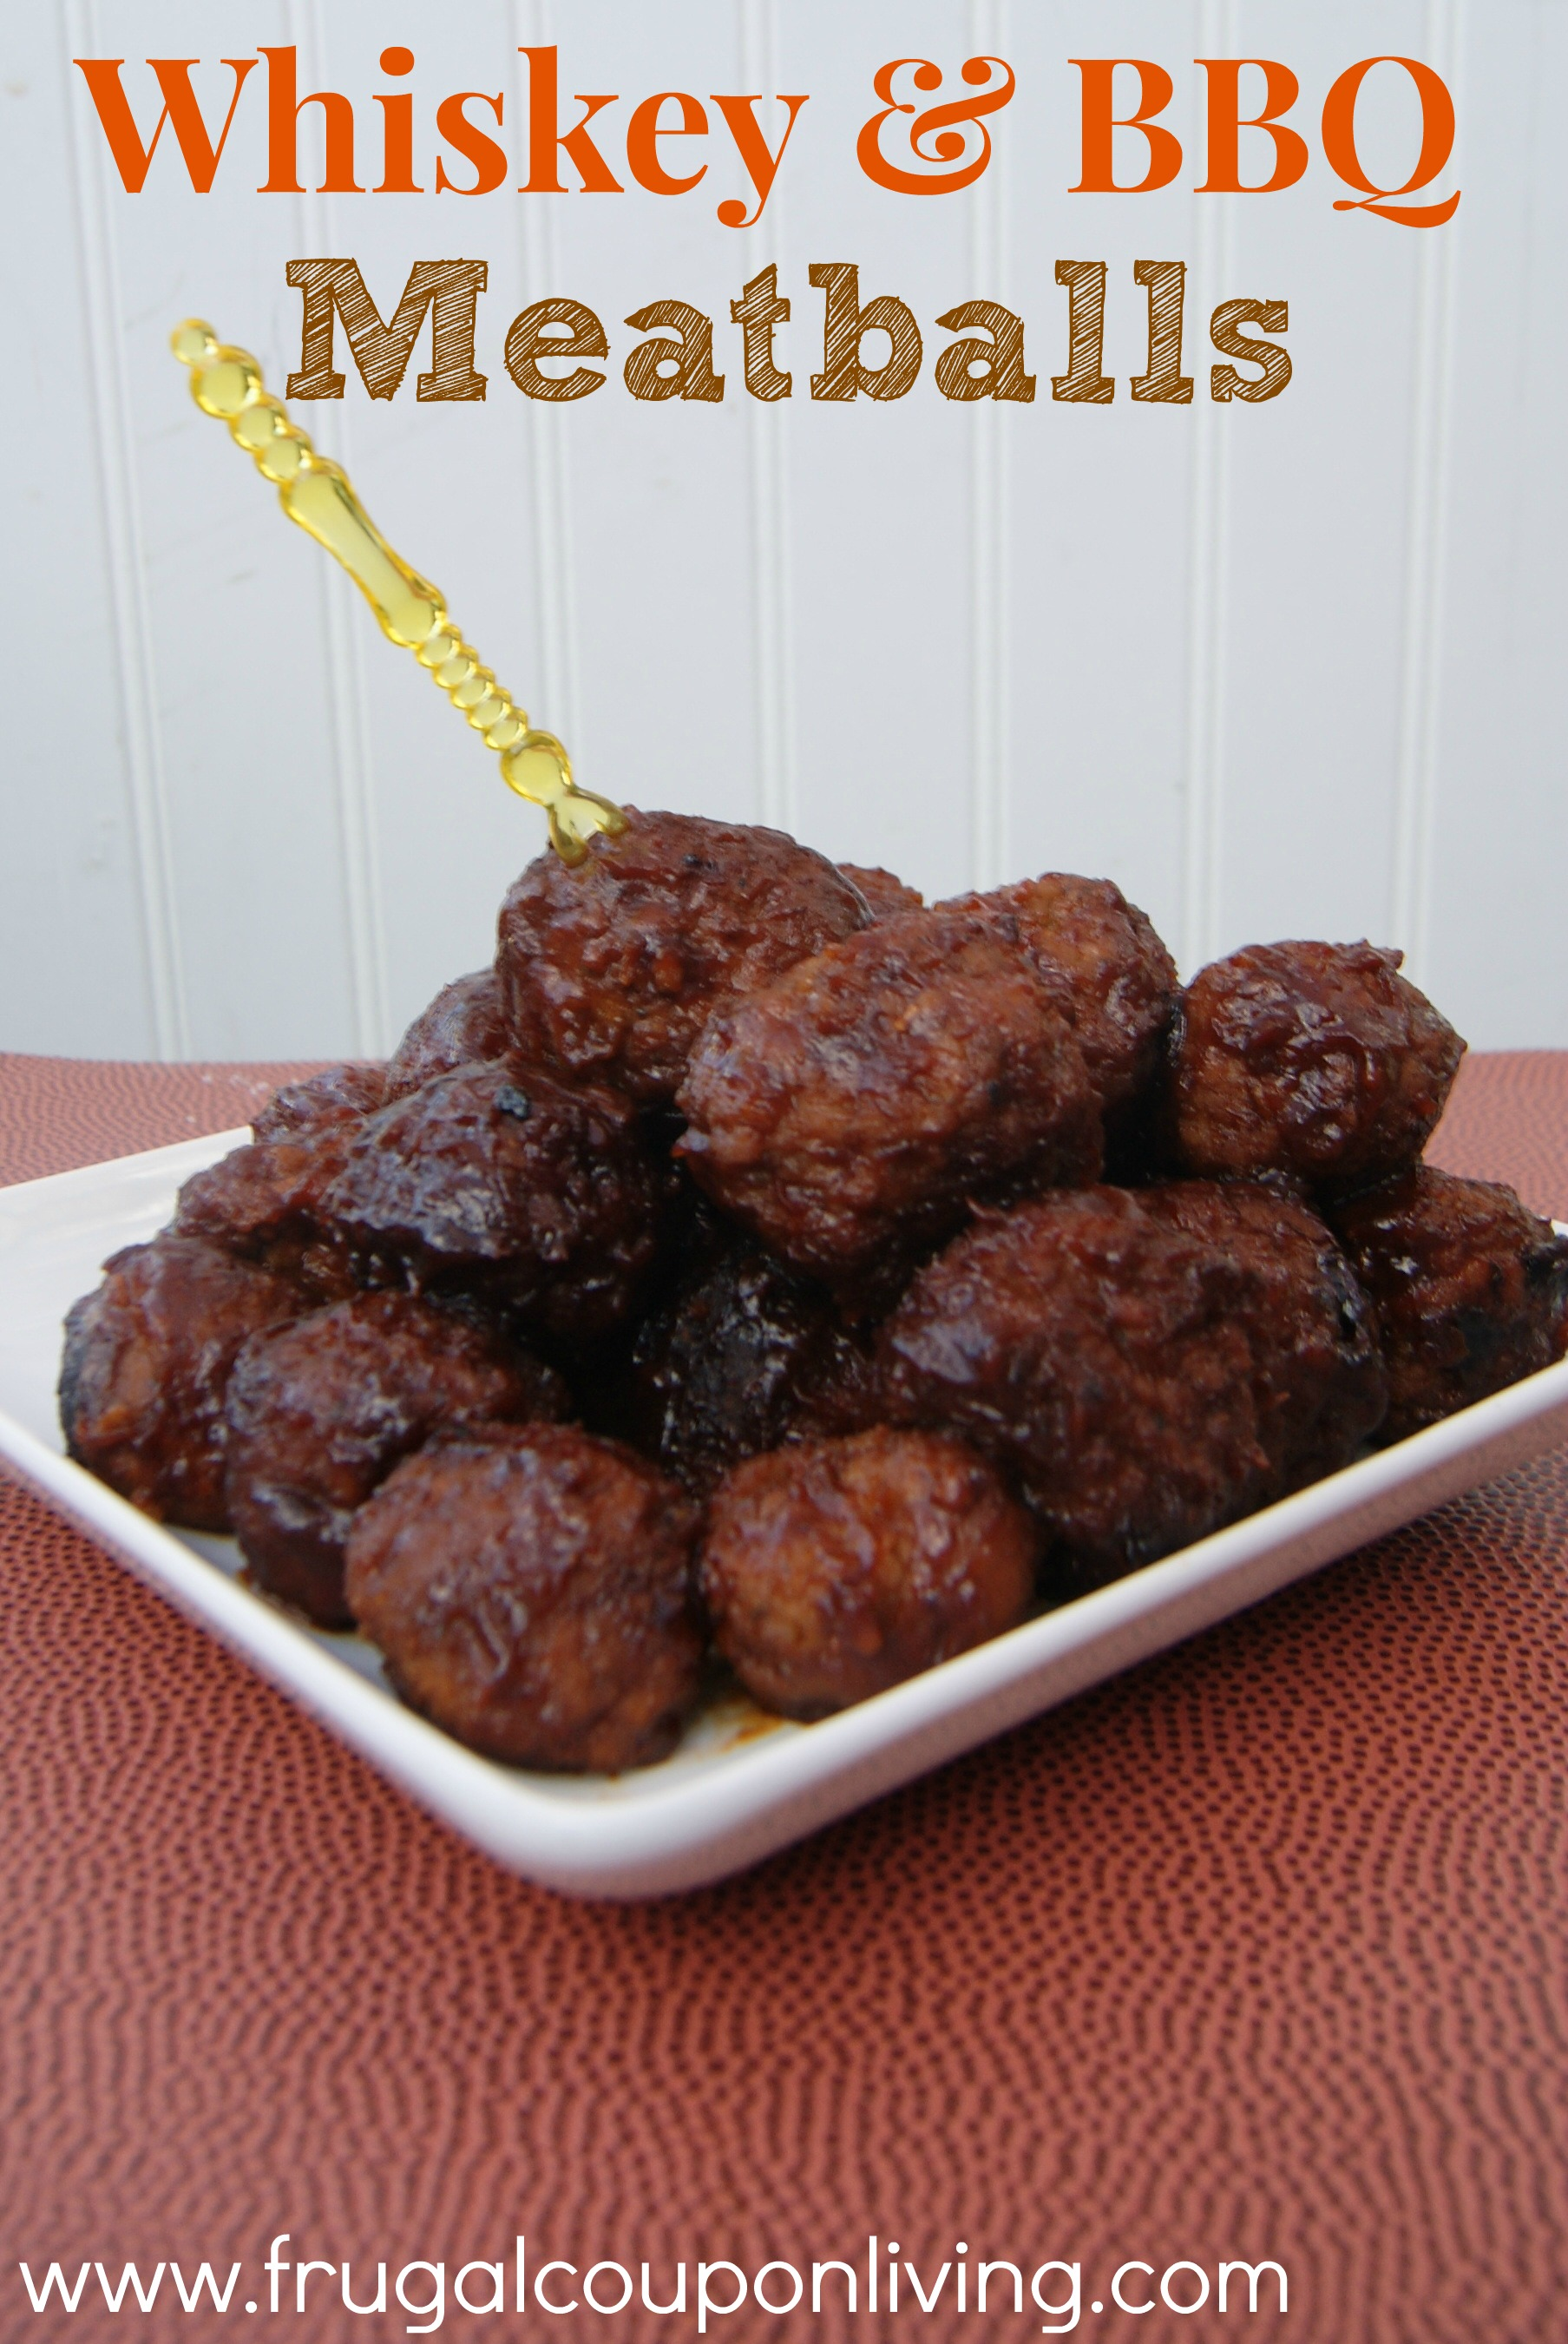 Whiskey & BBQ Meatballs Recipe - Football Gameday Appetizers